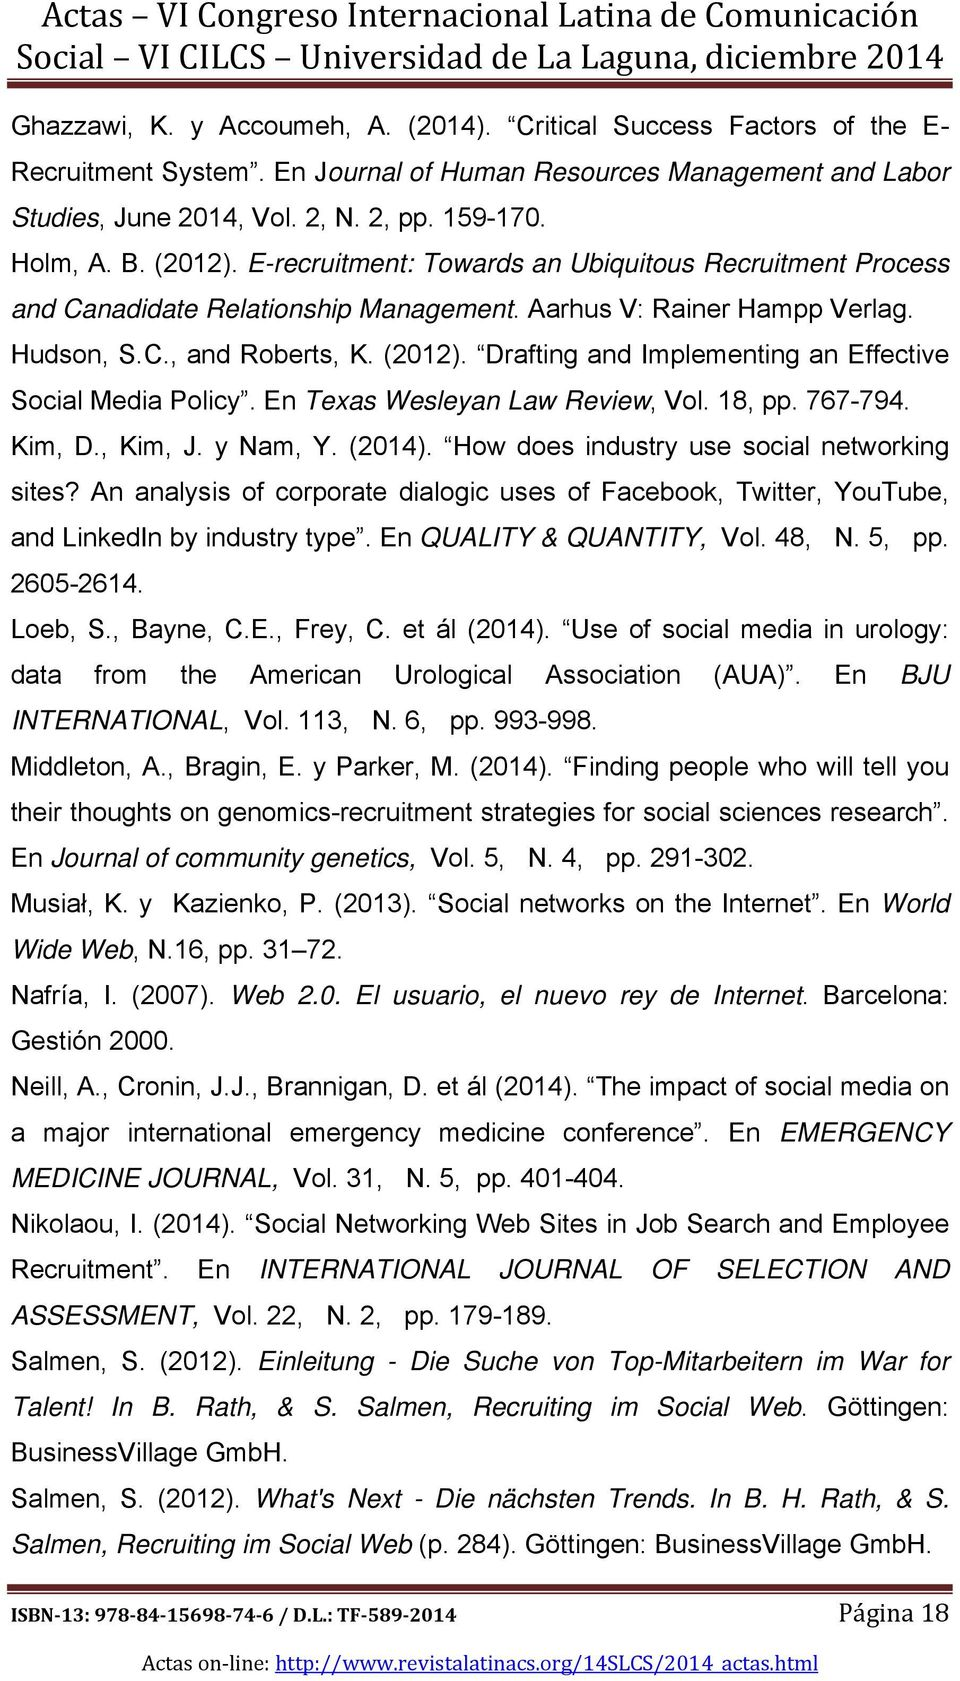 Drafting and Implementing an Effective Social Media Policy. En Texas Wesleyan Law Review, Vol. 18, pp. 767-794. Kim, D., Kim, J. y Nam, Y. (2014). How does industry use social networking sites?